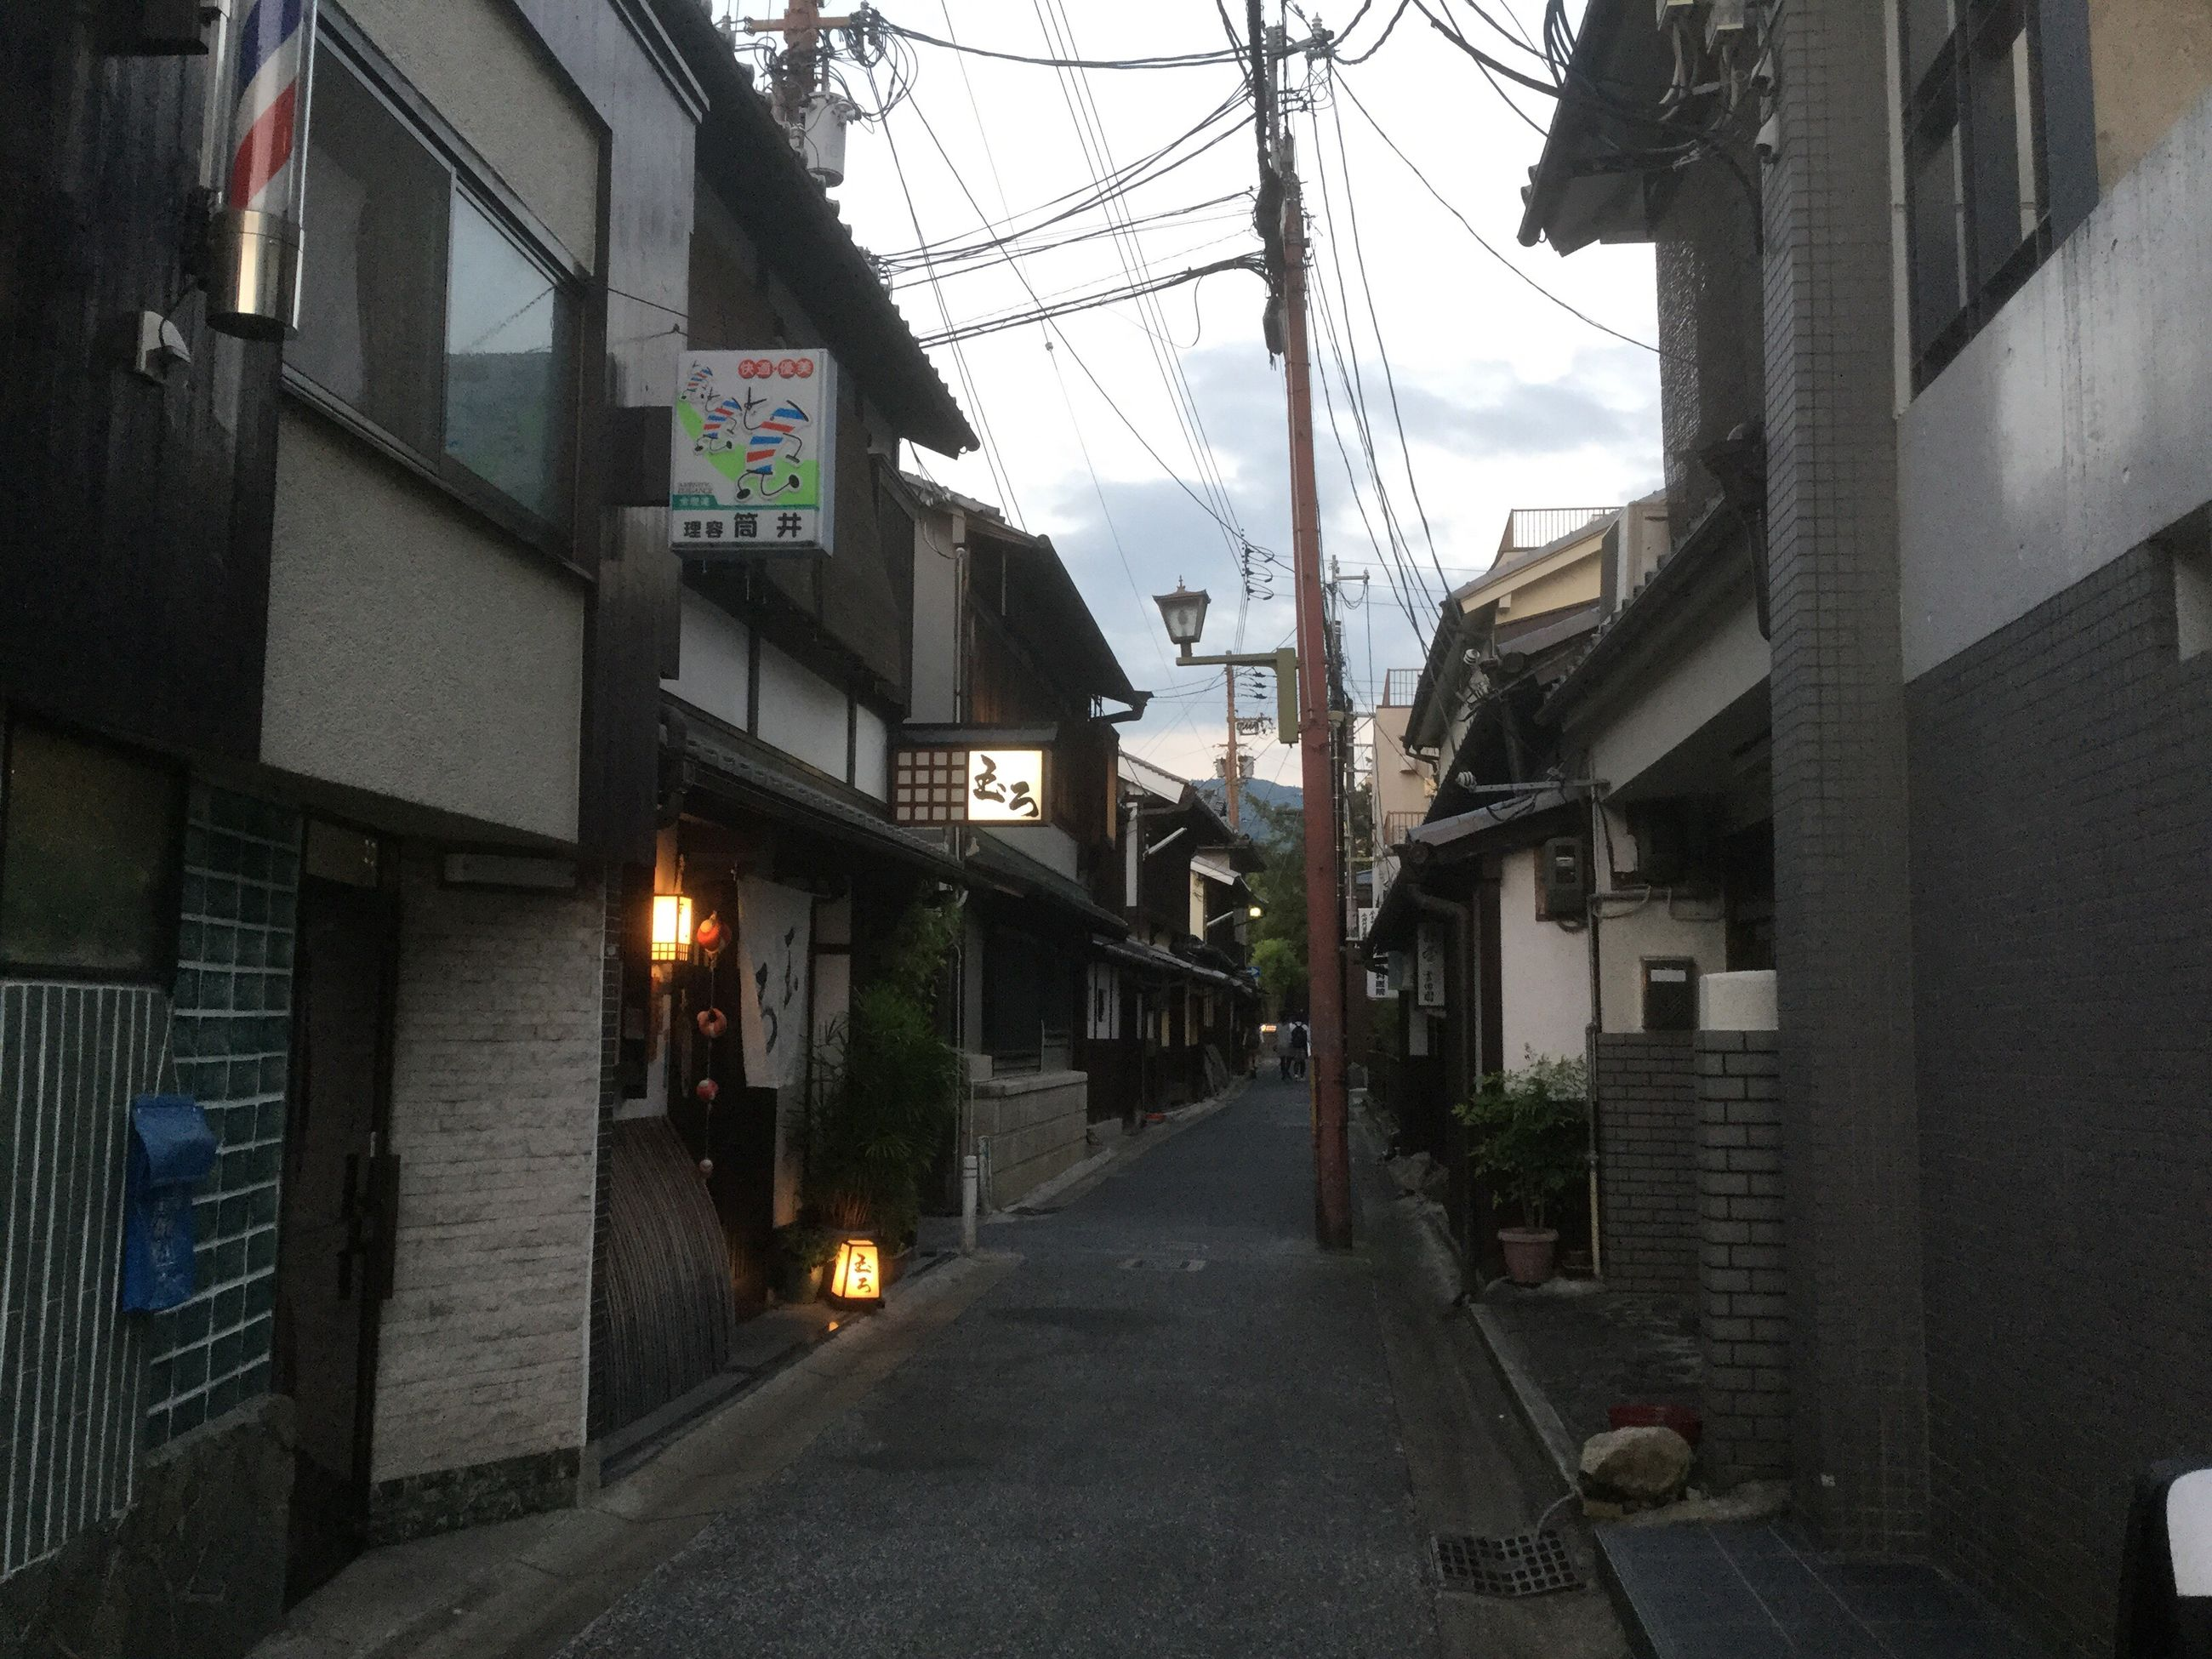 architecture, building exterior, built structure, street, the way forward, empty, road, long, narrow, residential building, residential structure, sky, city, pathway, footpath, outdoors, empty road, diminishing perspective, alley, no people